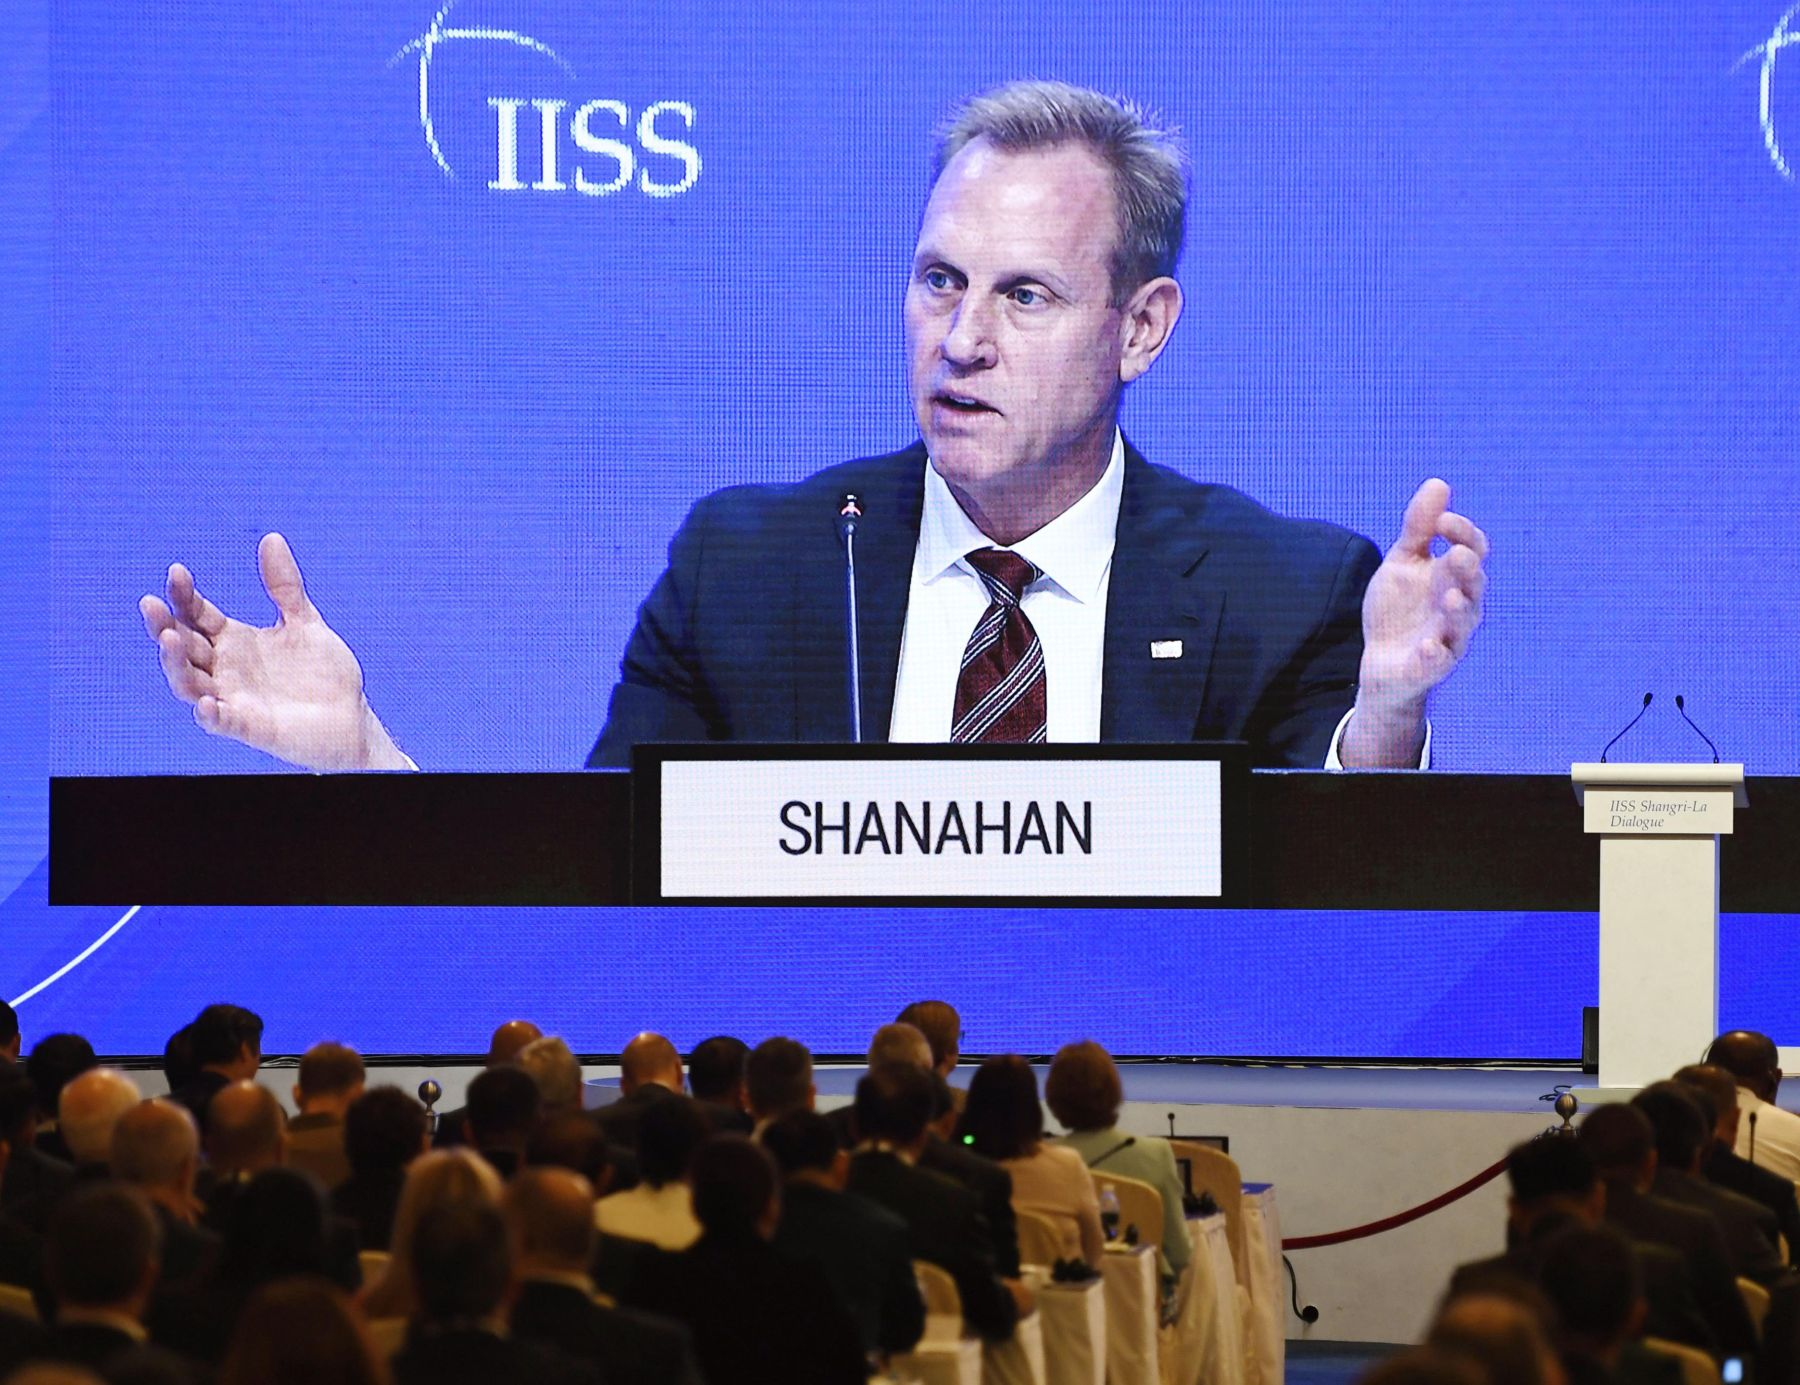 Patrick Shanahan announced the US Indo-Pacific Strategy at Singapore 009